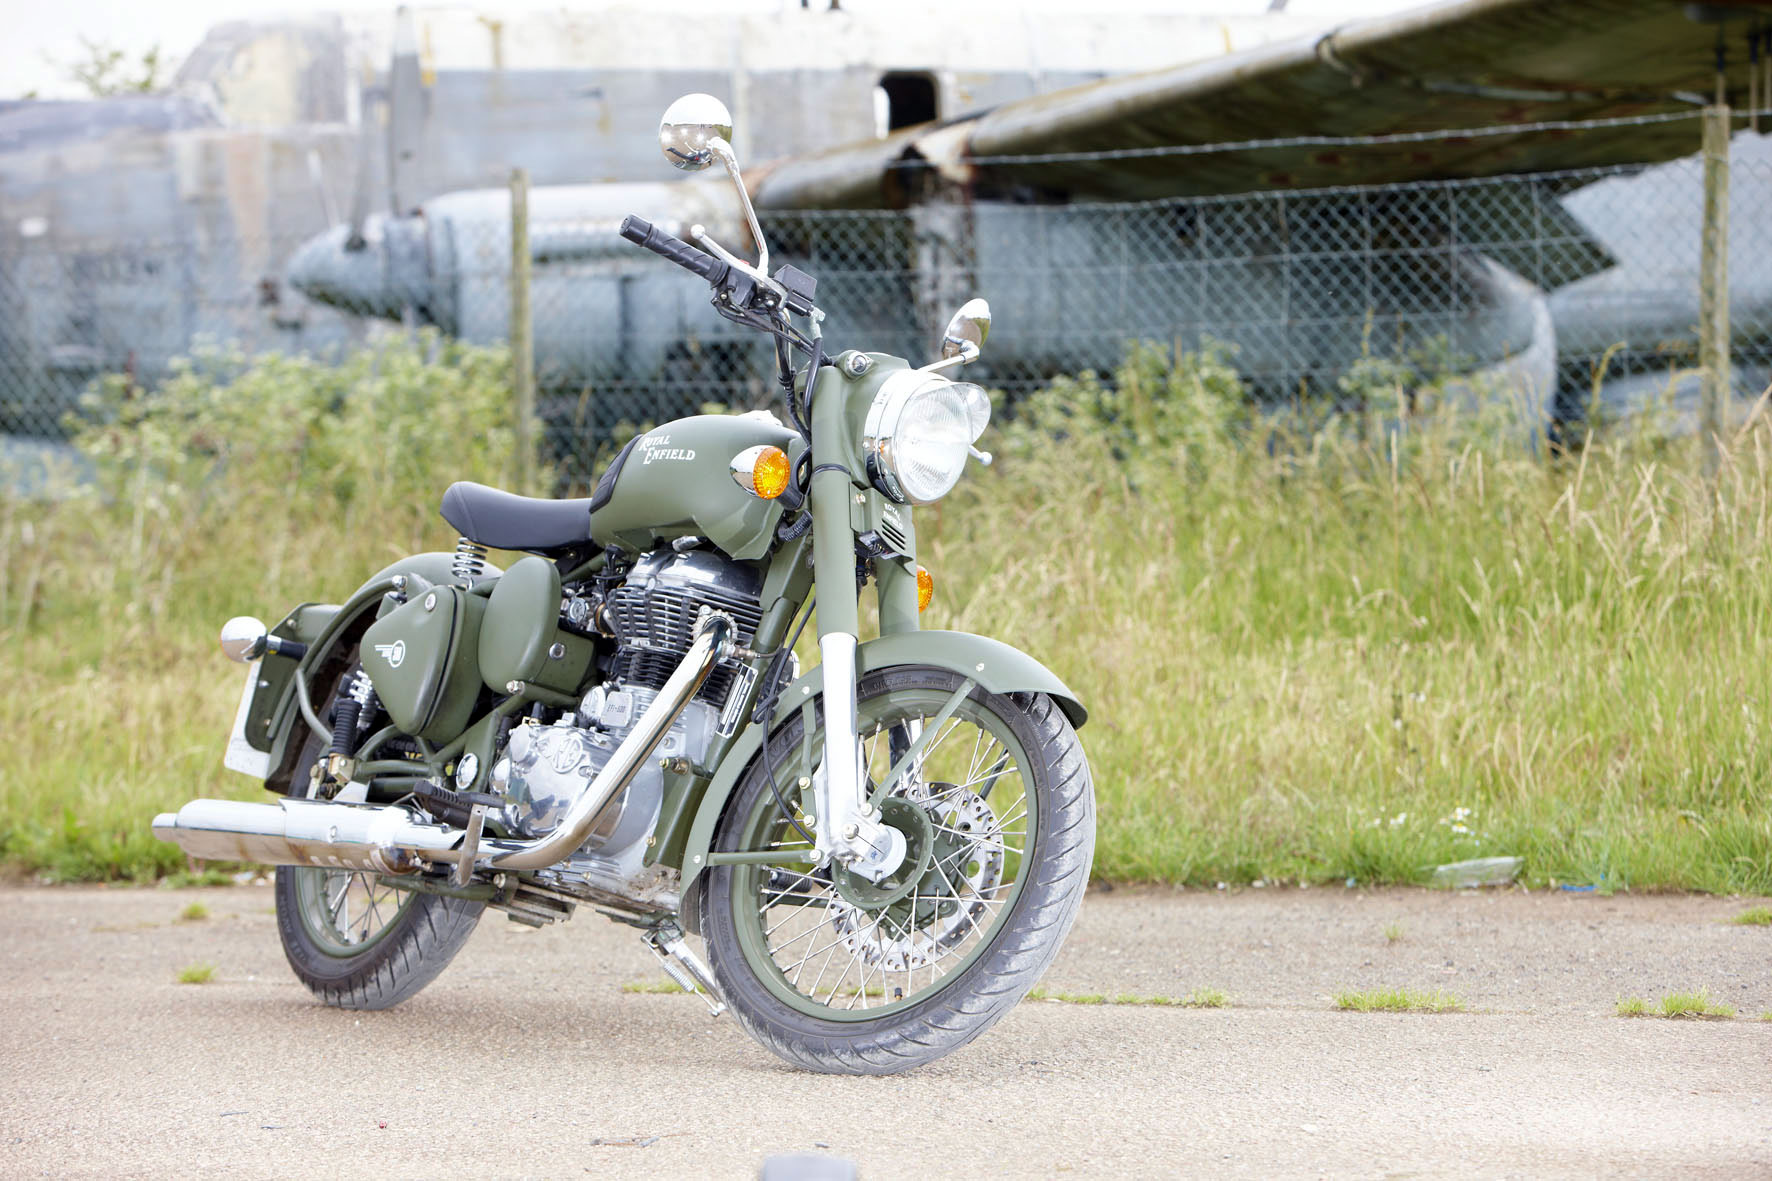 Royal Enfield Bullet 500 Army 2002 images #123426